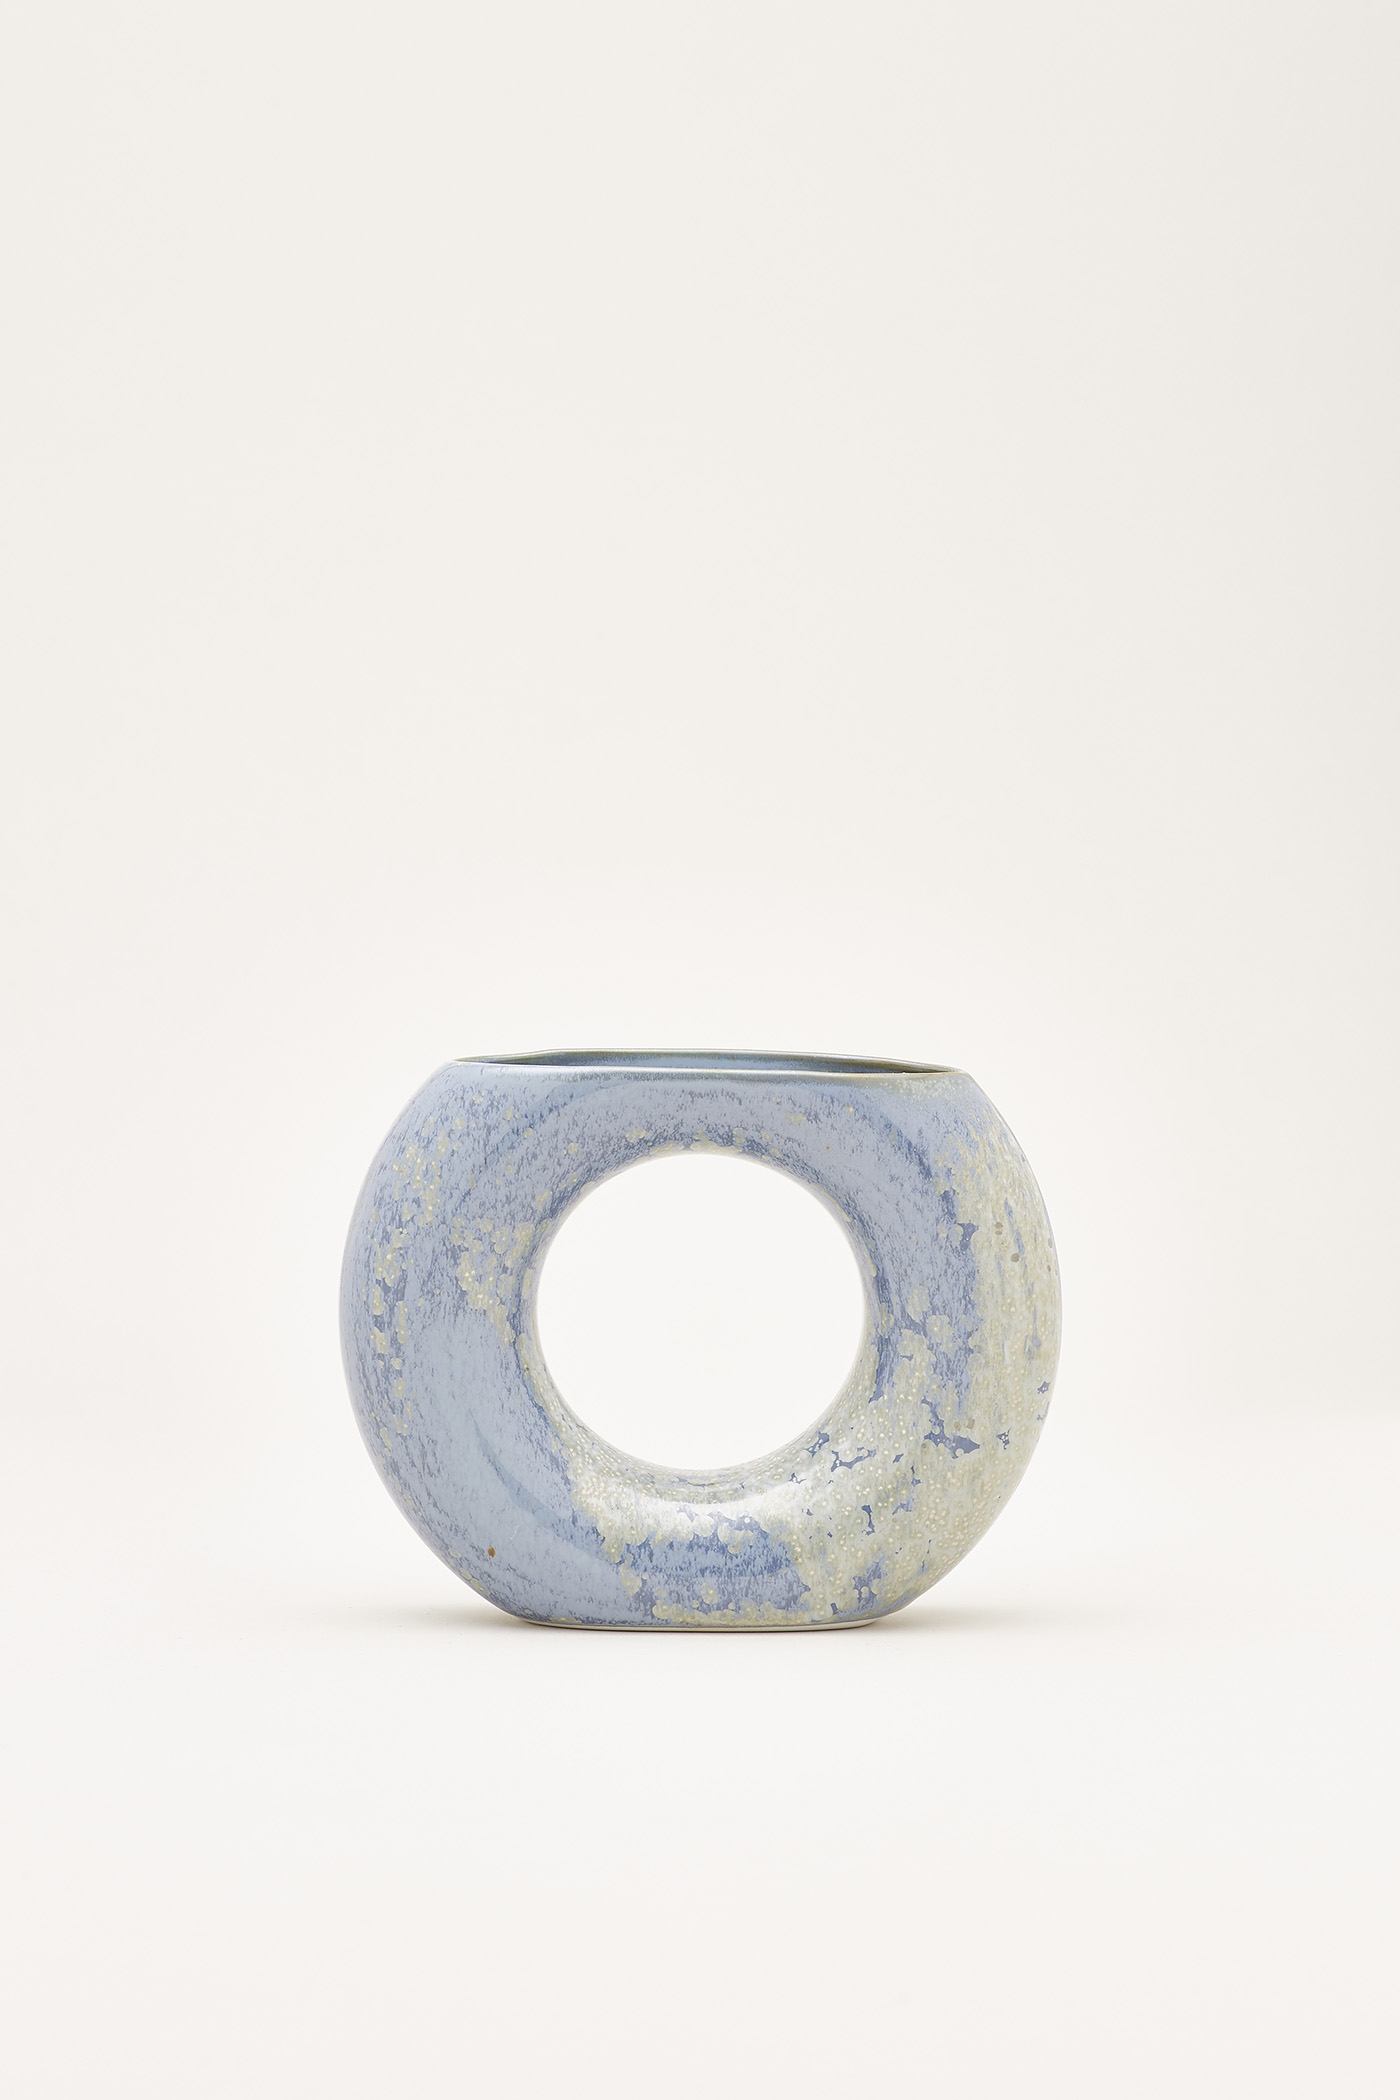 Sumi Ceramic Ring Vase